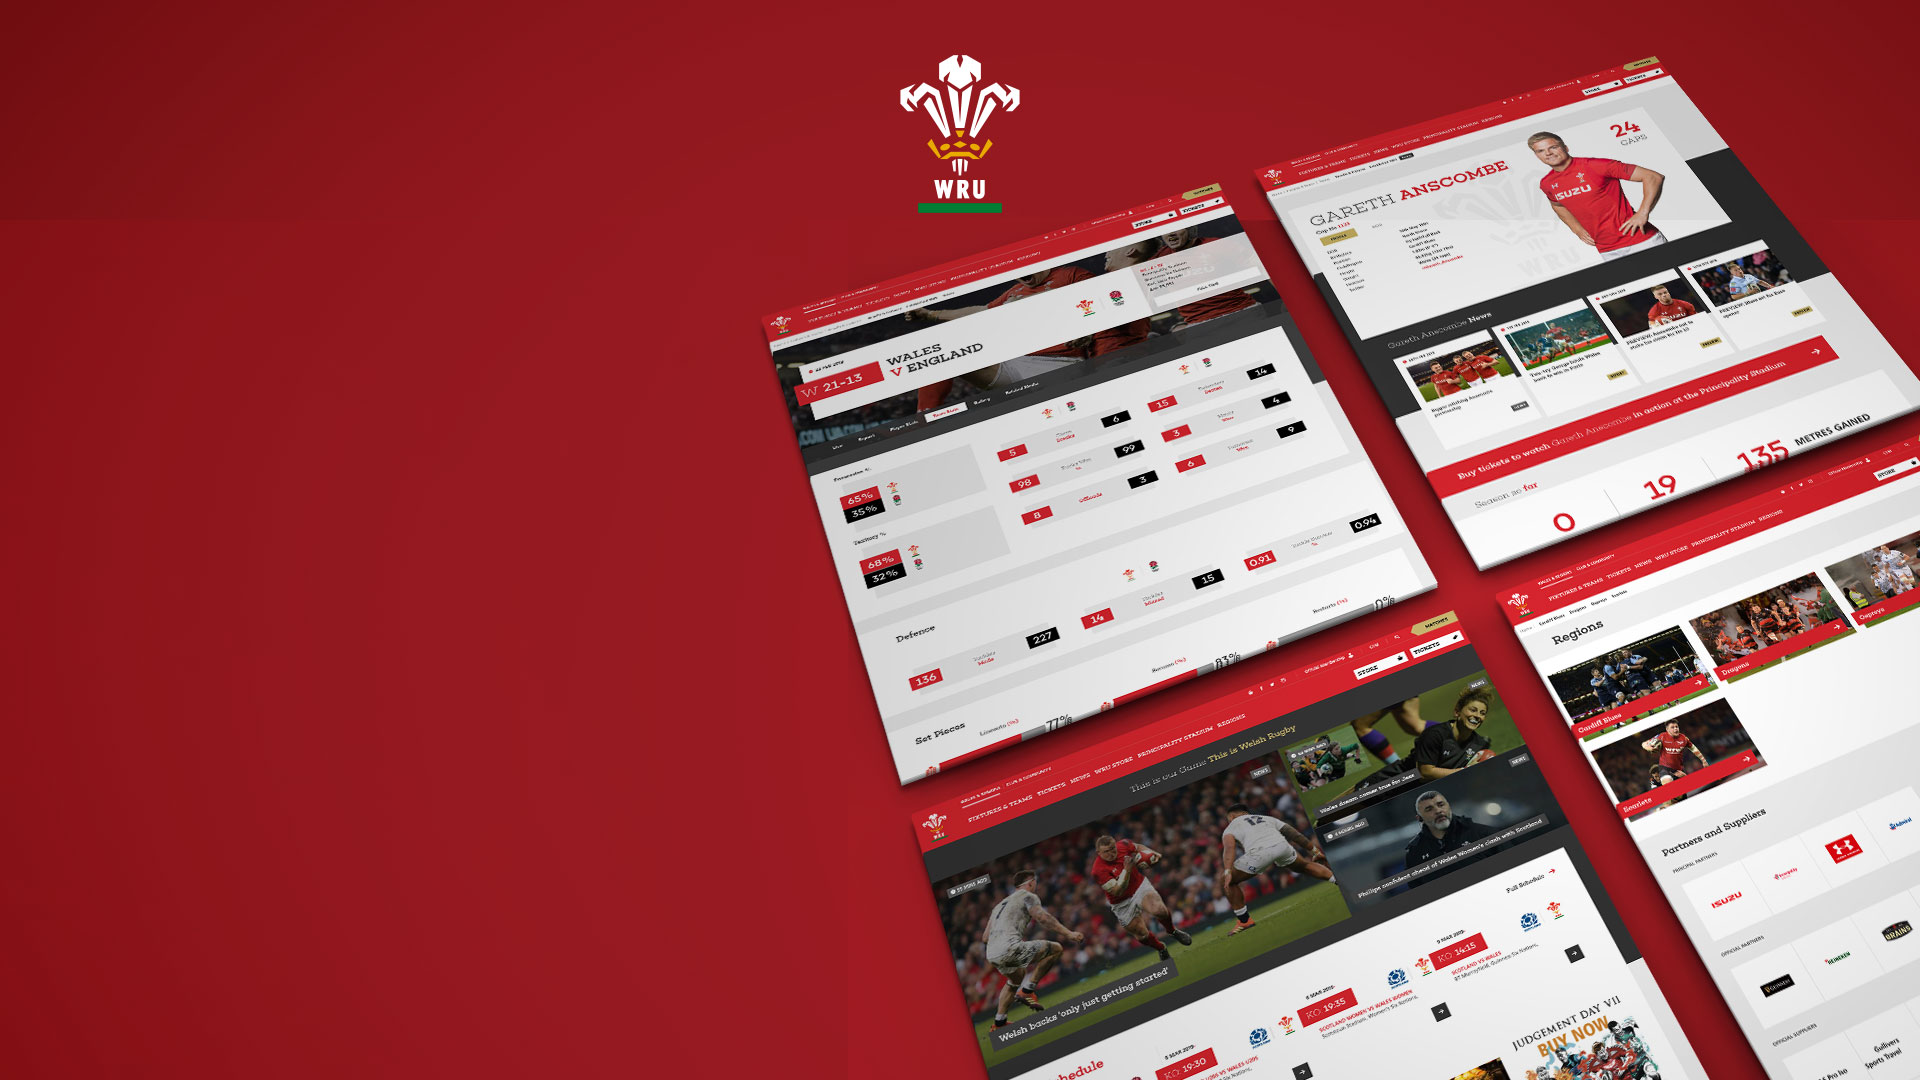 Wru website pages